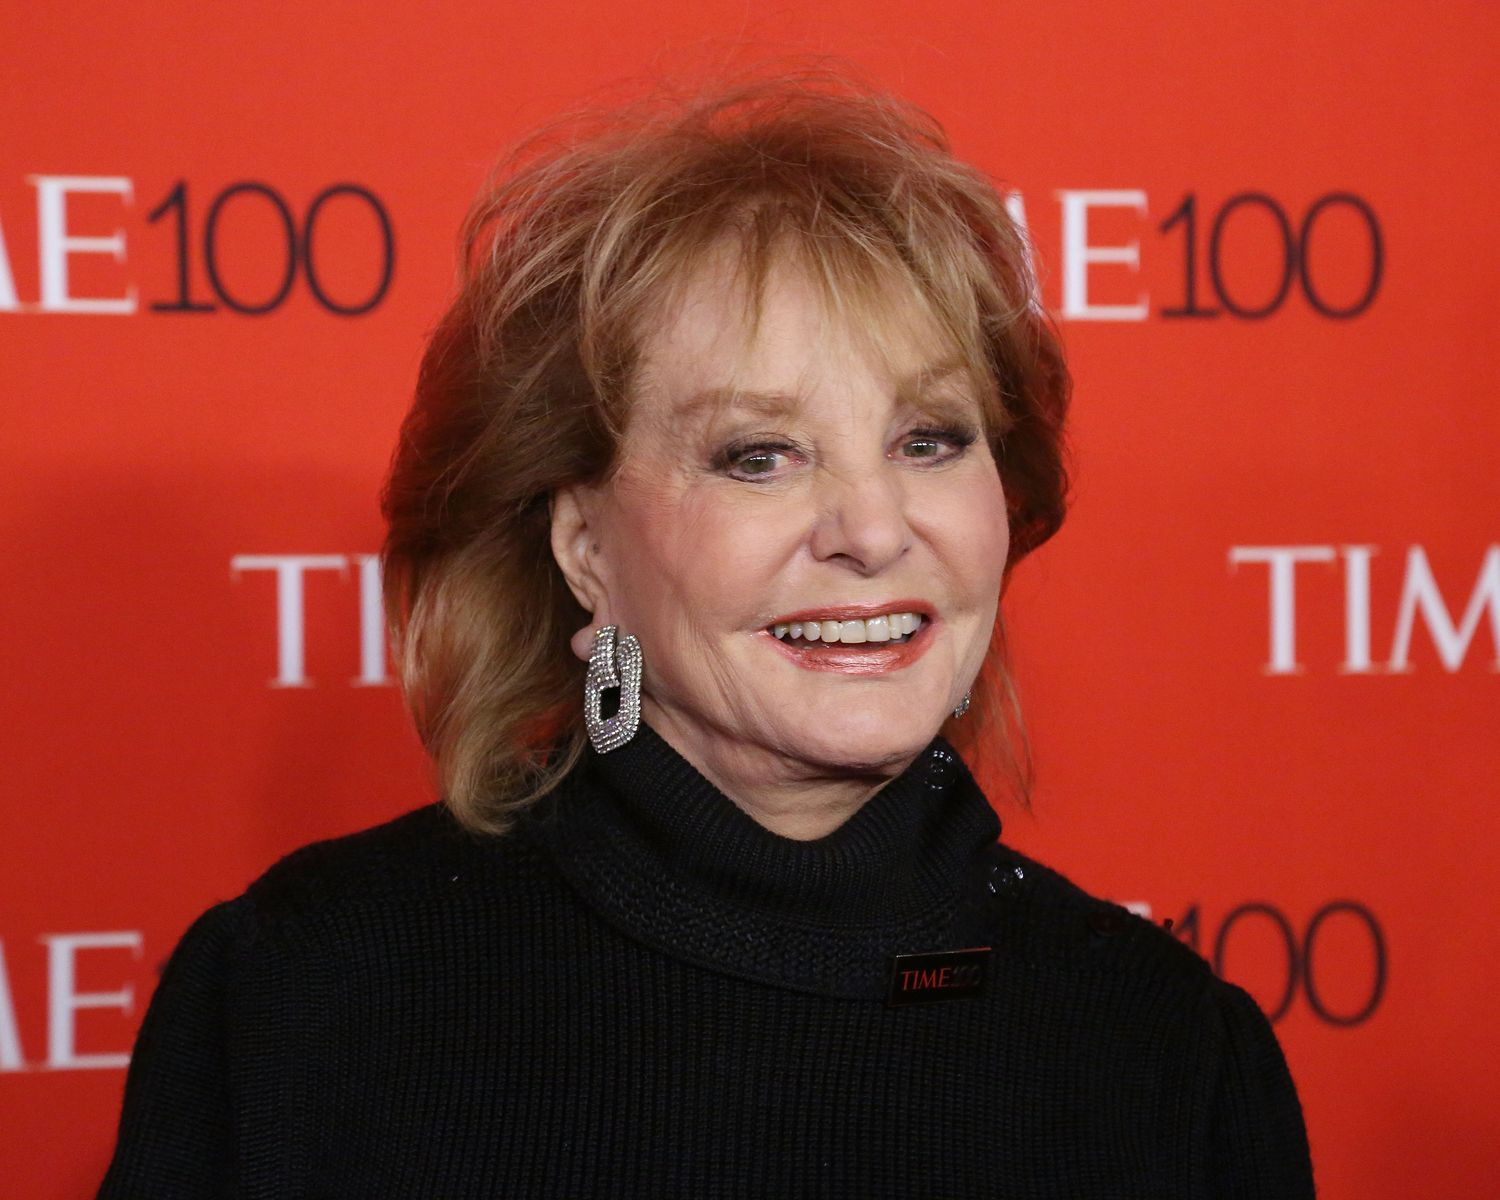 TV personality Barbara Walters at the 2015 Time 100 Gala at Frederick P. Rose Hall, Jazz at Lincoln Center on April 21, 2015 | Photo: Getty Images